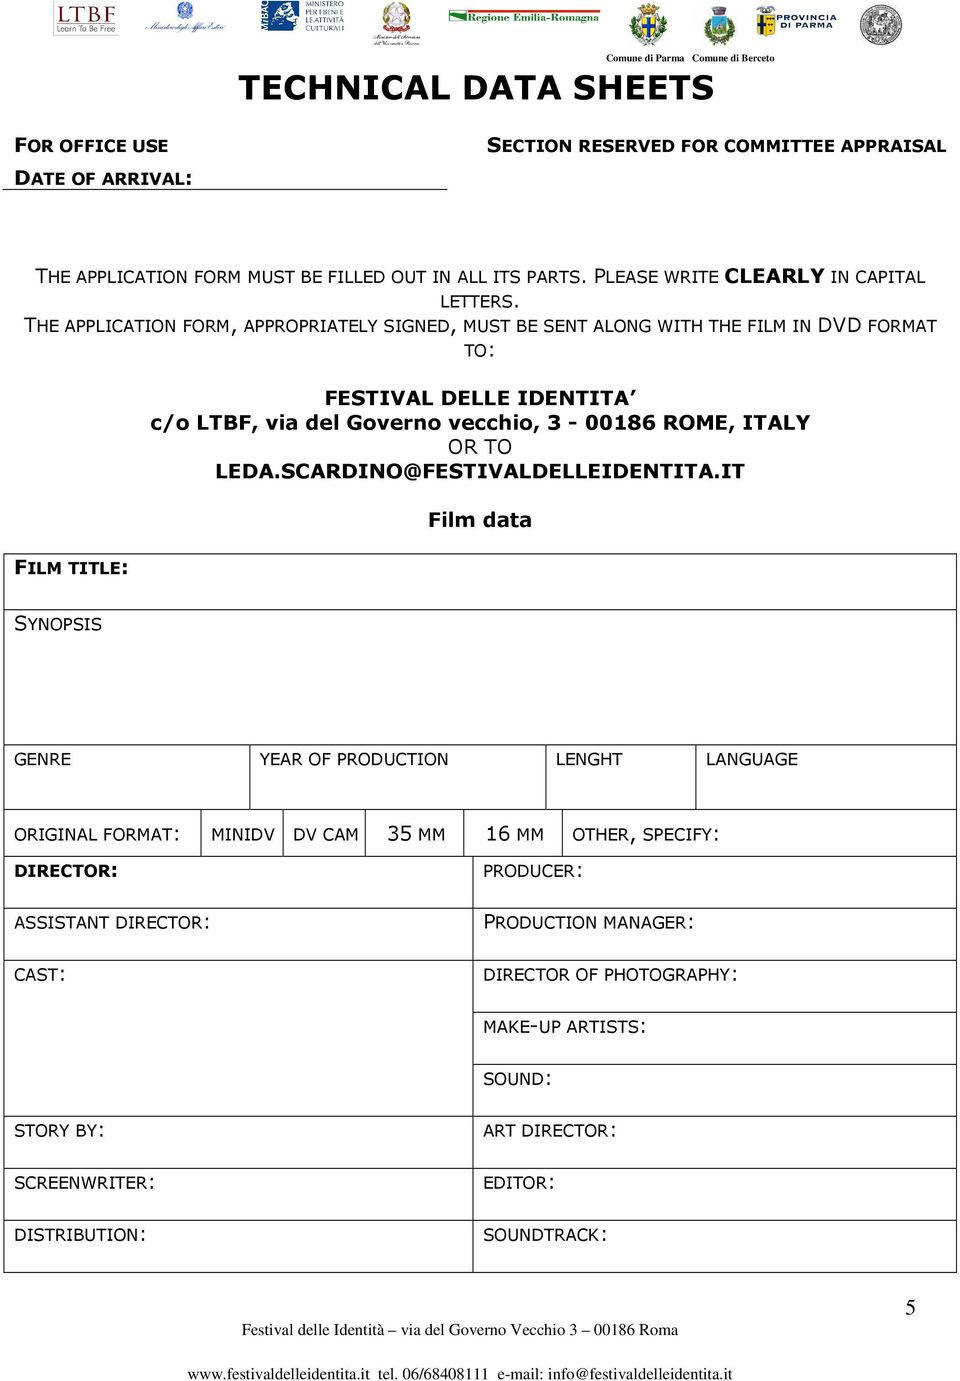 THE APPLICATION FORM, APPROPRIATELY SIGNED, MUST BE SENT ALONG WITH THE FILM IN DVD FORMAT TO: FILM TITLE: FESTIVAL DELLE IDENTITA c/o LTBF, via del Governo vecchio, 3-00186 ROME,